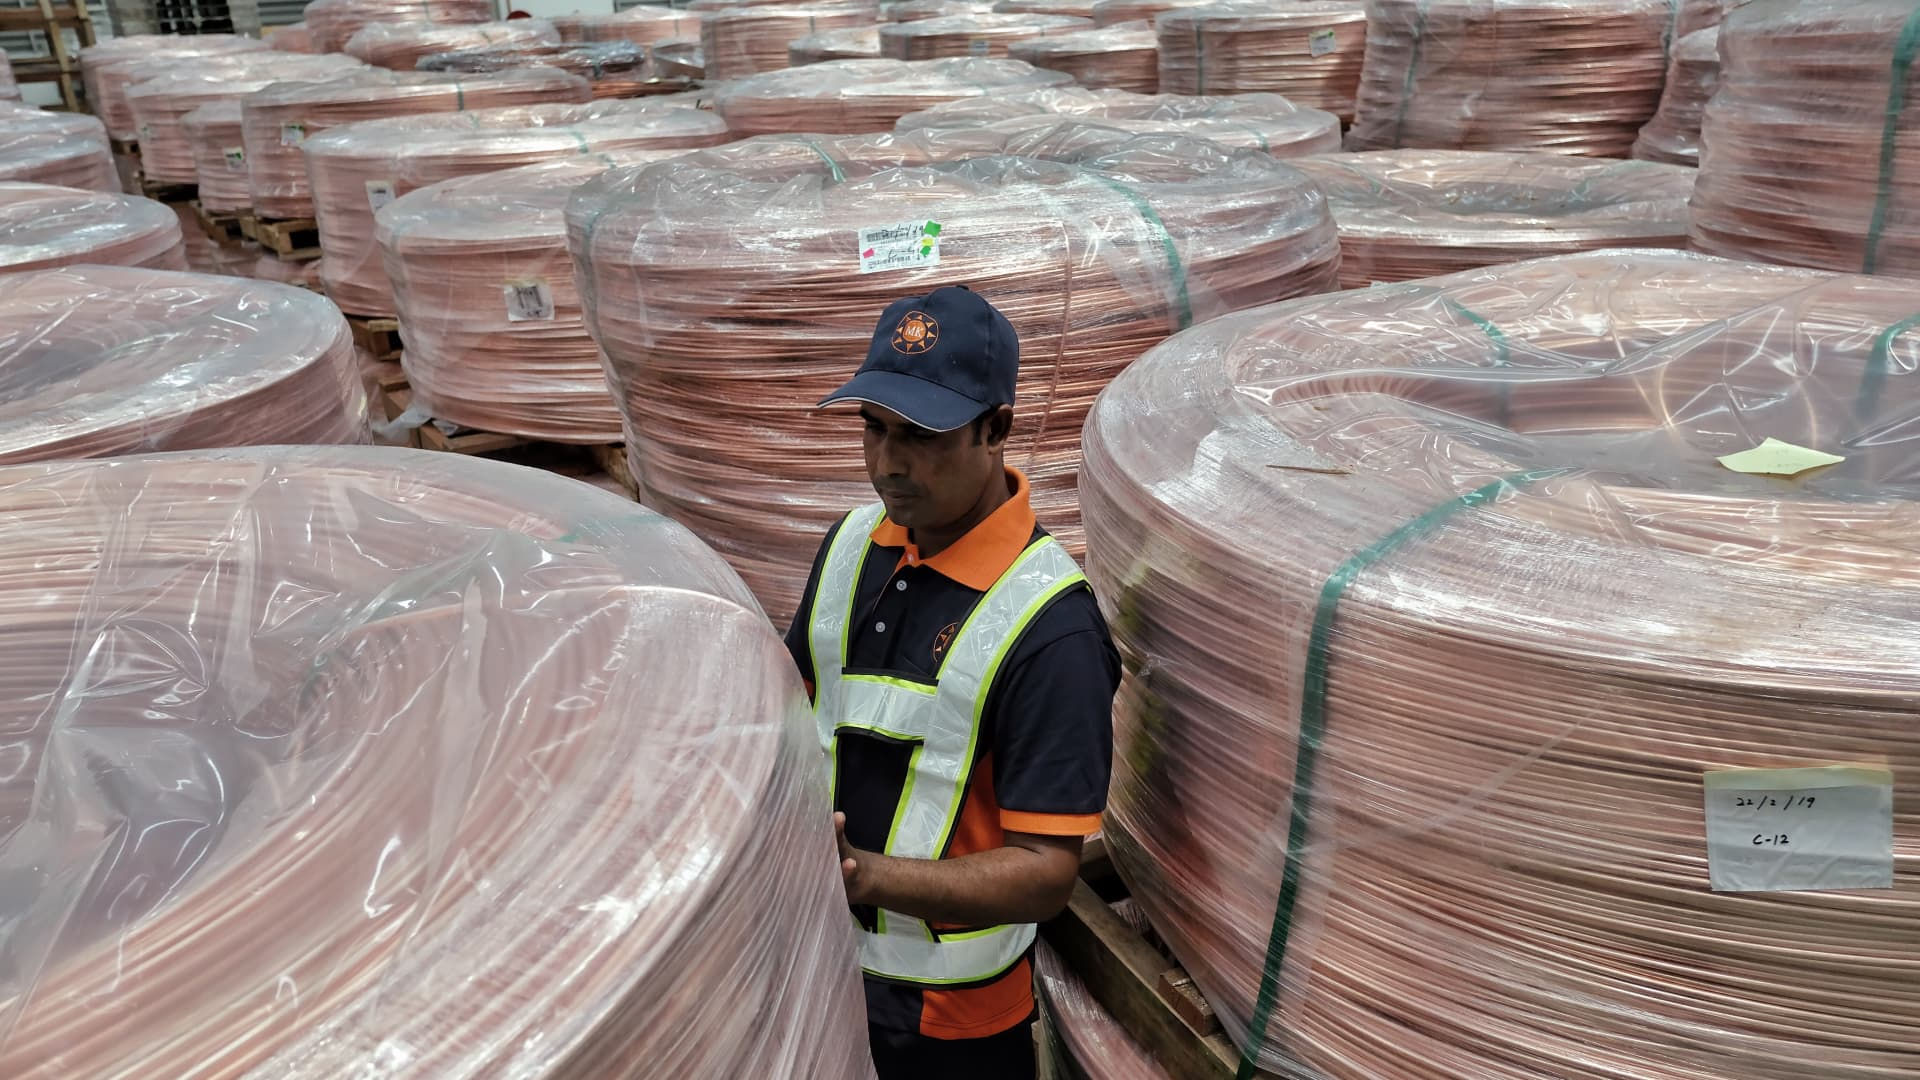 A worker checks the final packing of copper rod during the Metrod official launch for the new plant on Feb. 23, 2019 in Shah Alam, Malaysia.